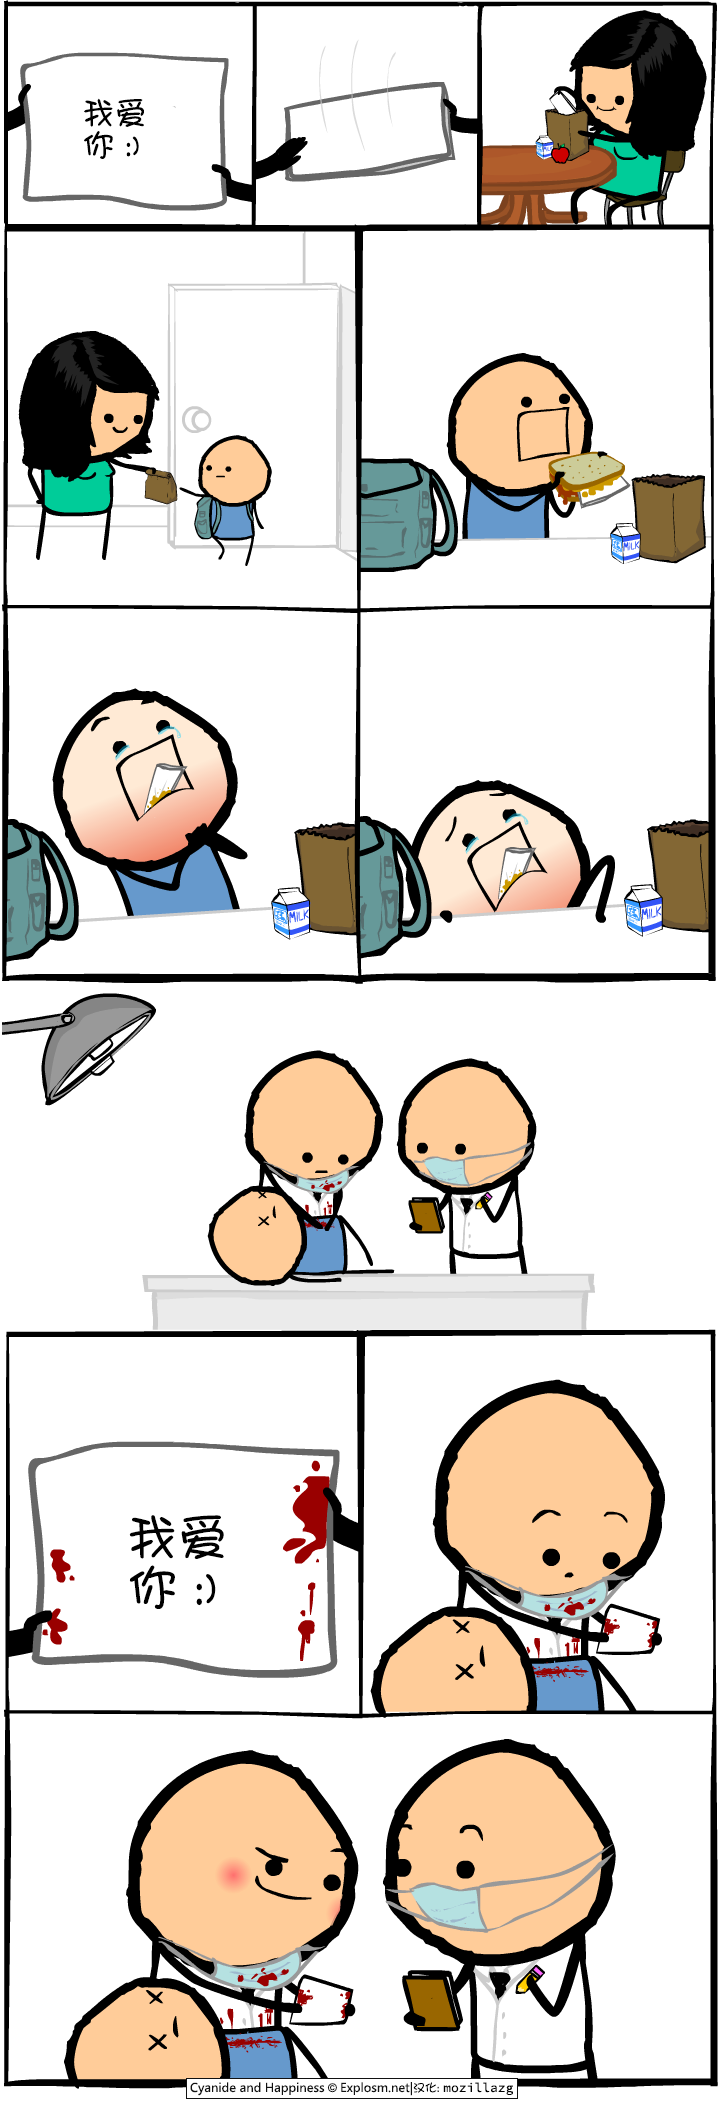 Cyanide & Happiness #3807:note